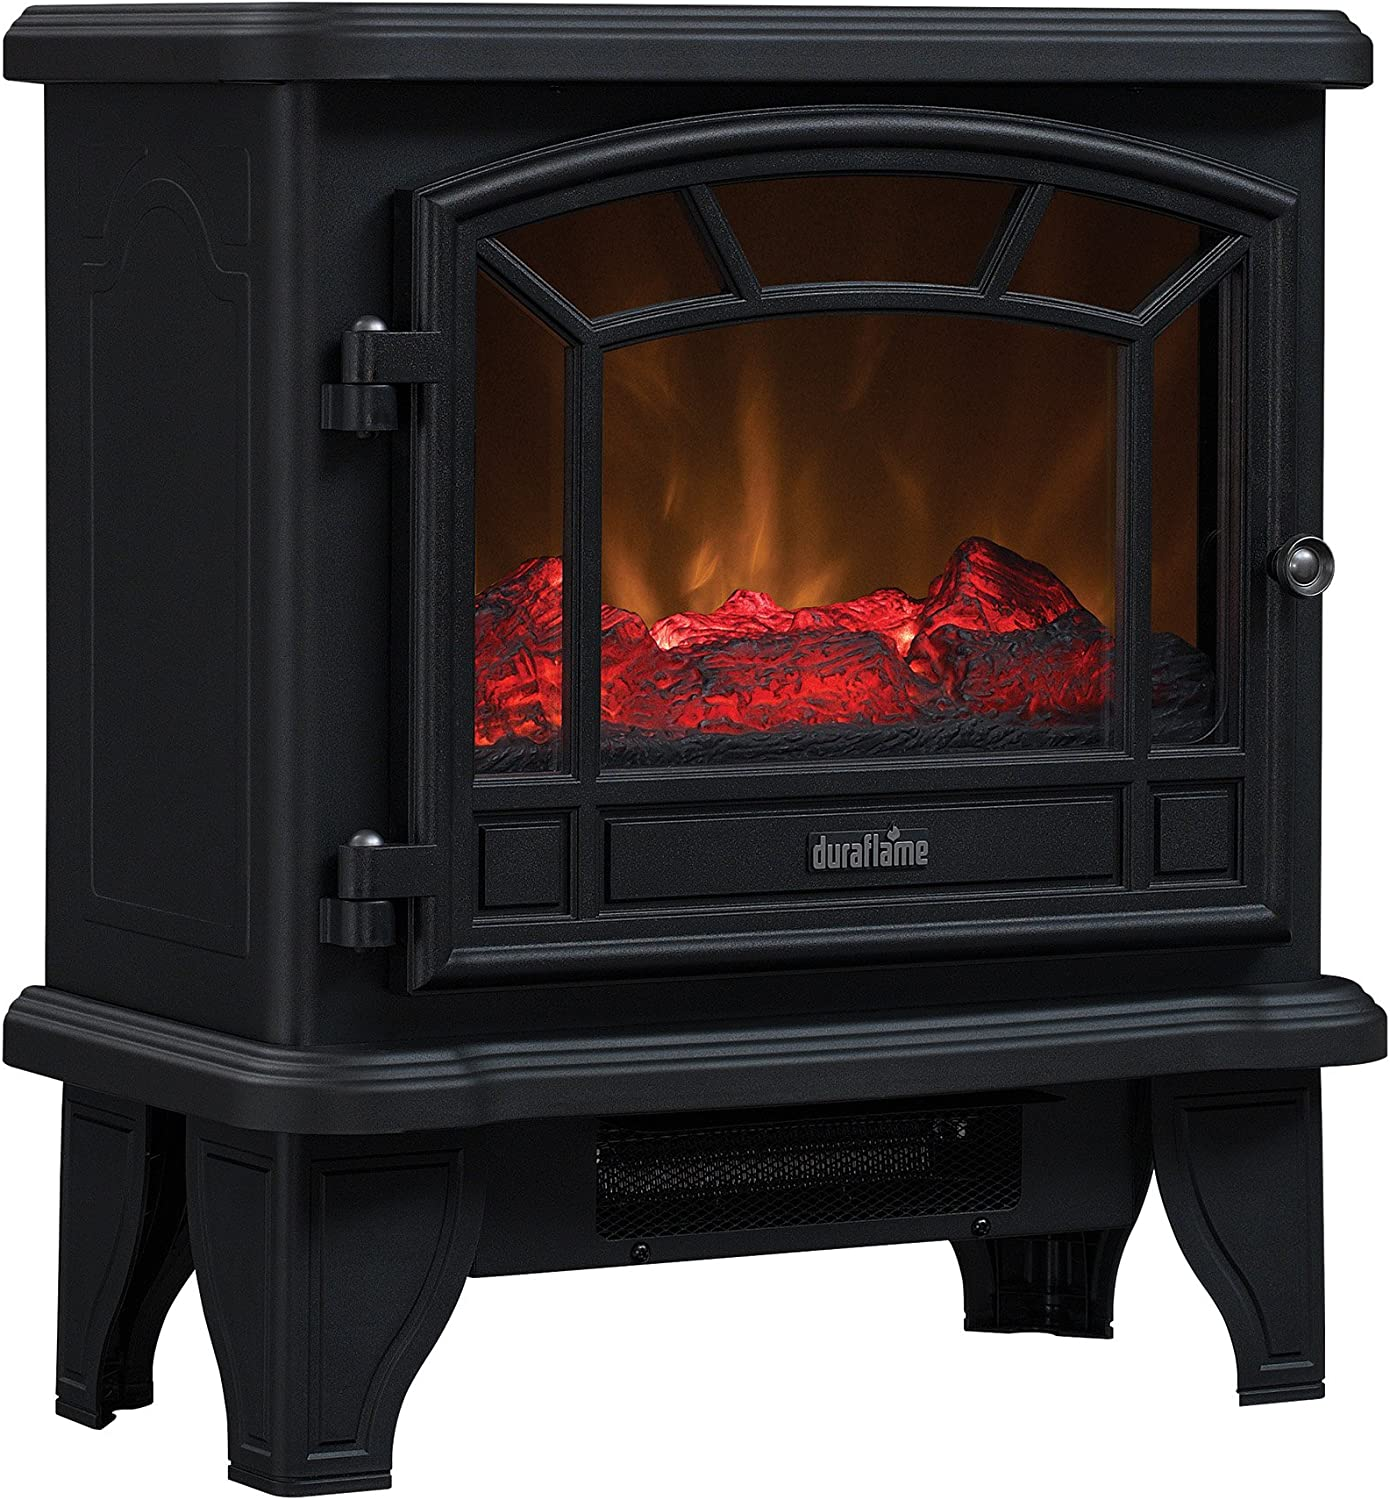 Most Economical Electric Heater